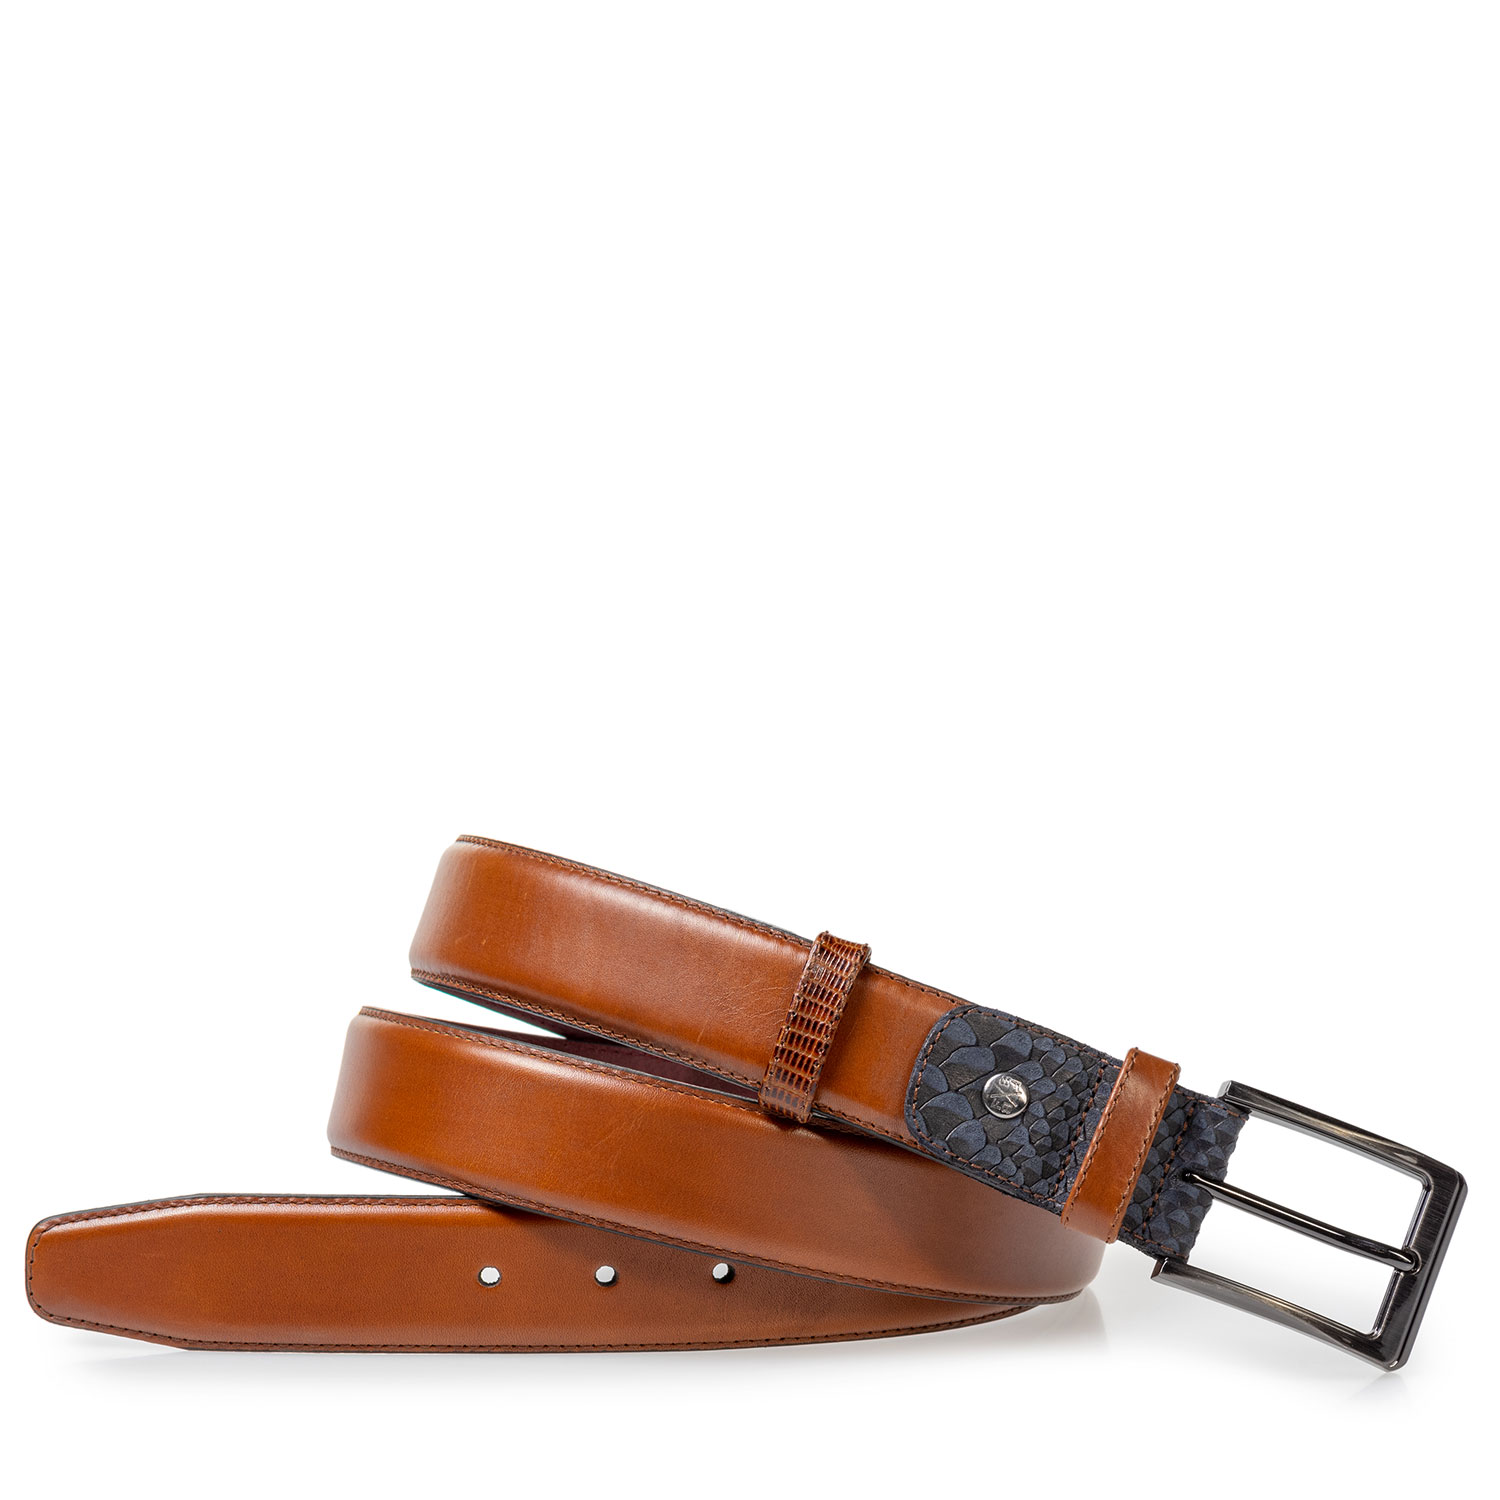 75160/00 - Cognac-coloured leather belt